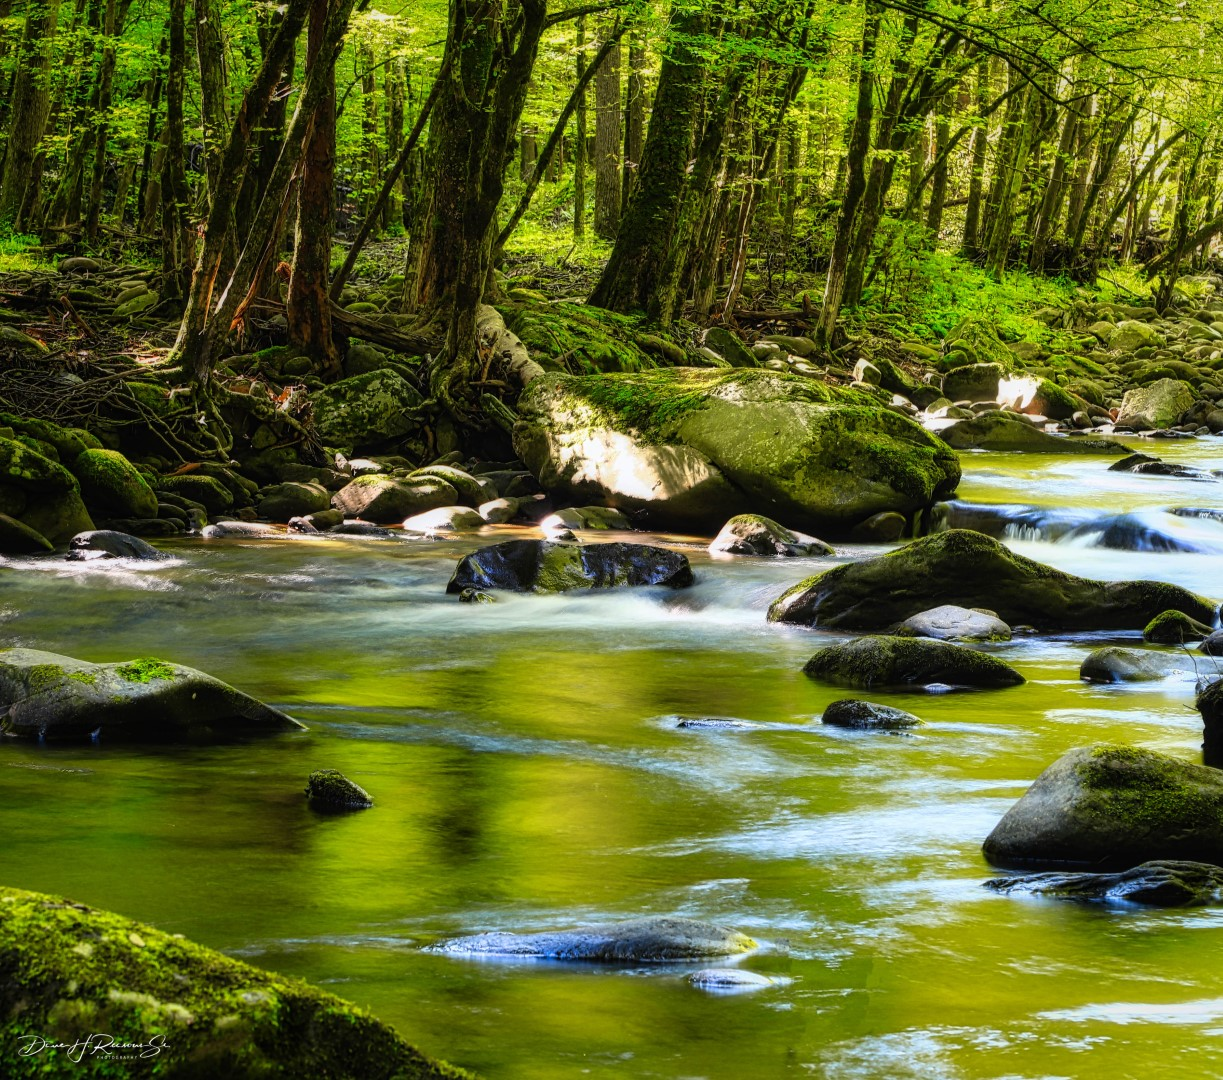 Sun on the rocks, everything is green, water flowing.  Middle Prong Little River, Tremont